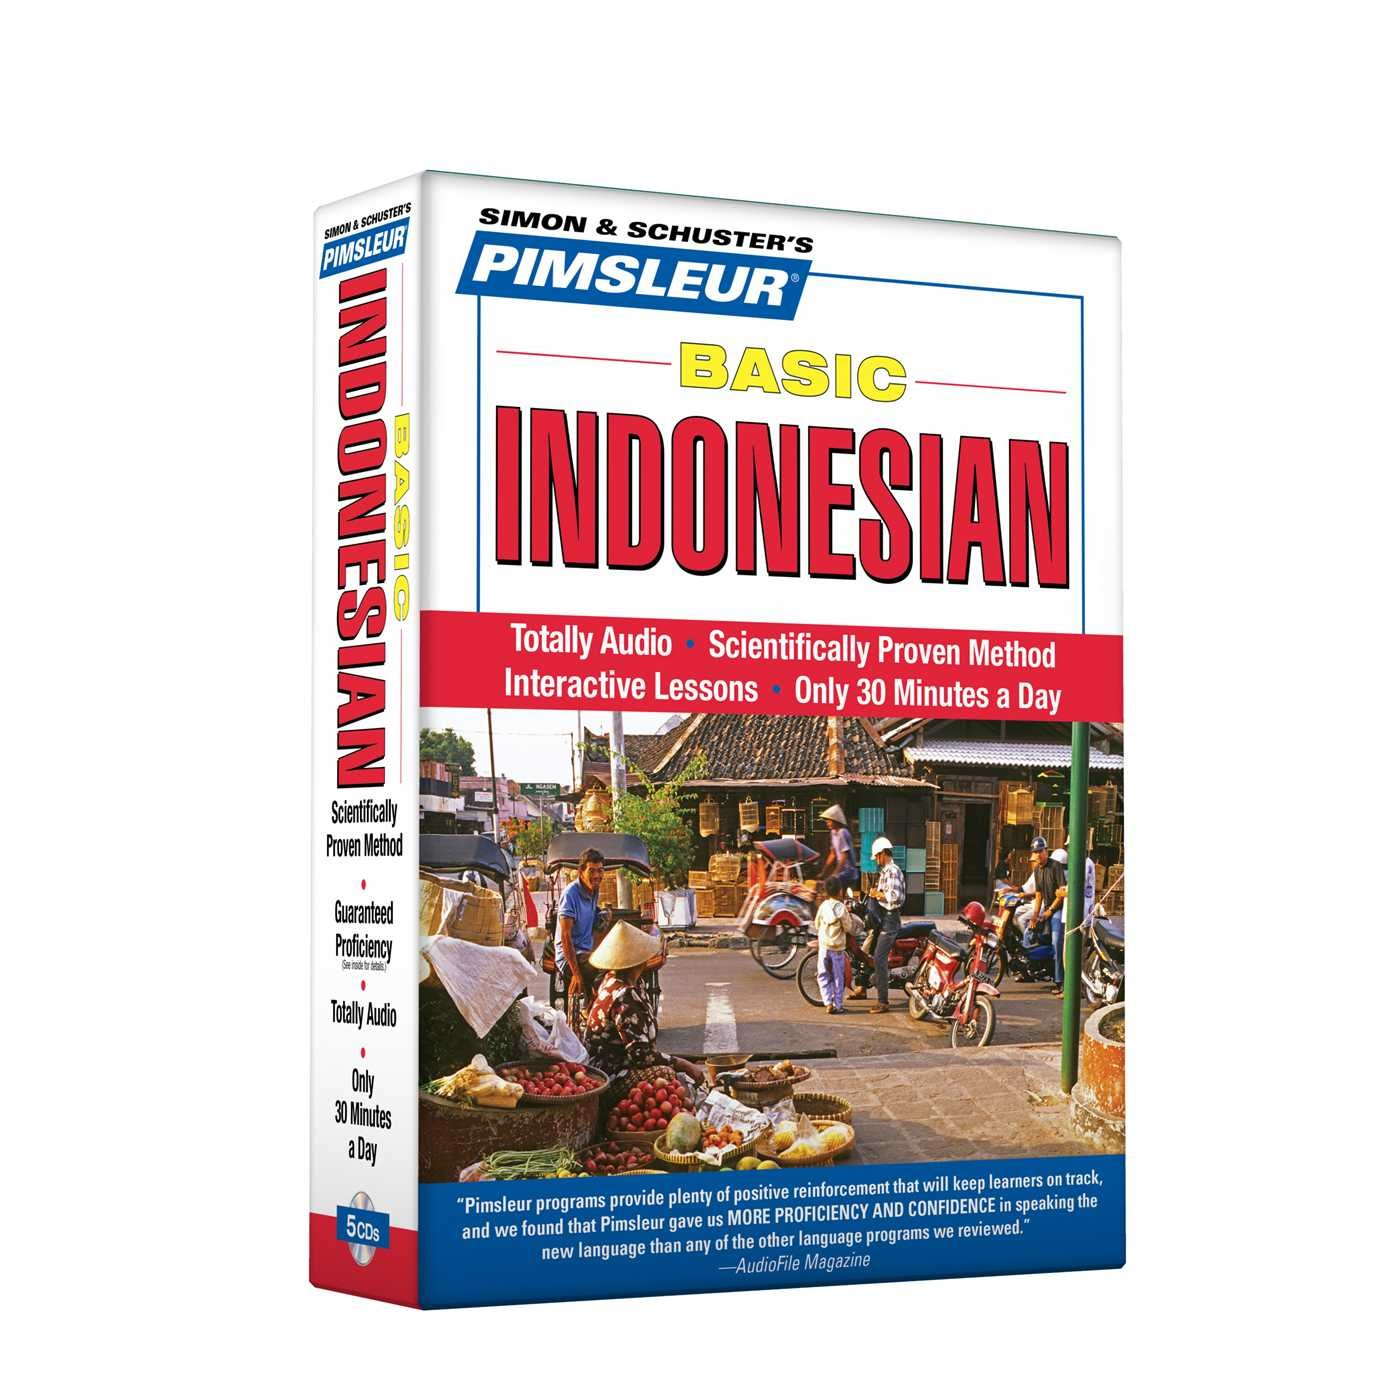 Pimsleur Indonesian Basic Course - Level 1 Lessons 1-10 CD: Learn to Speak and Understand Indonesian with Pimsleur Language Programs by Brand: Pimsleur